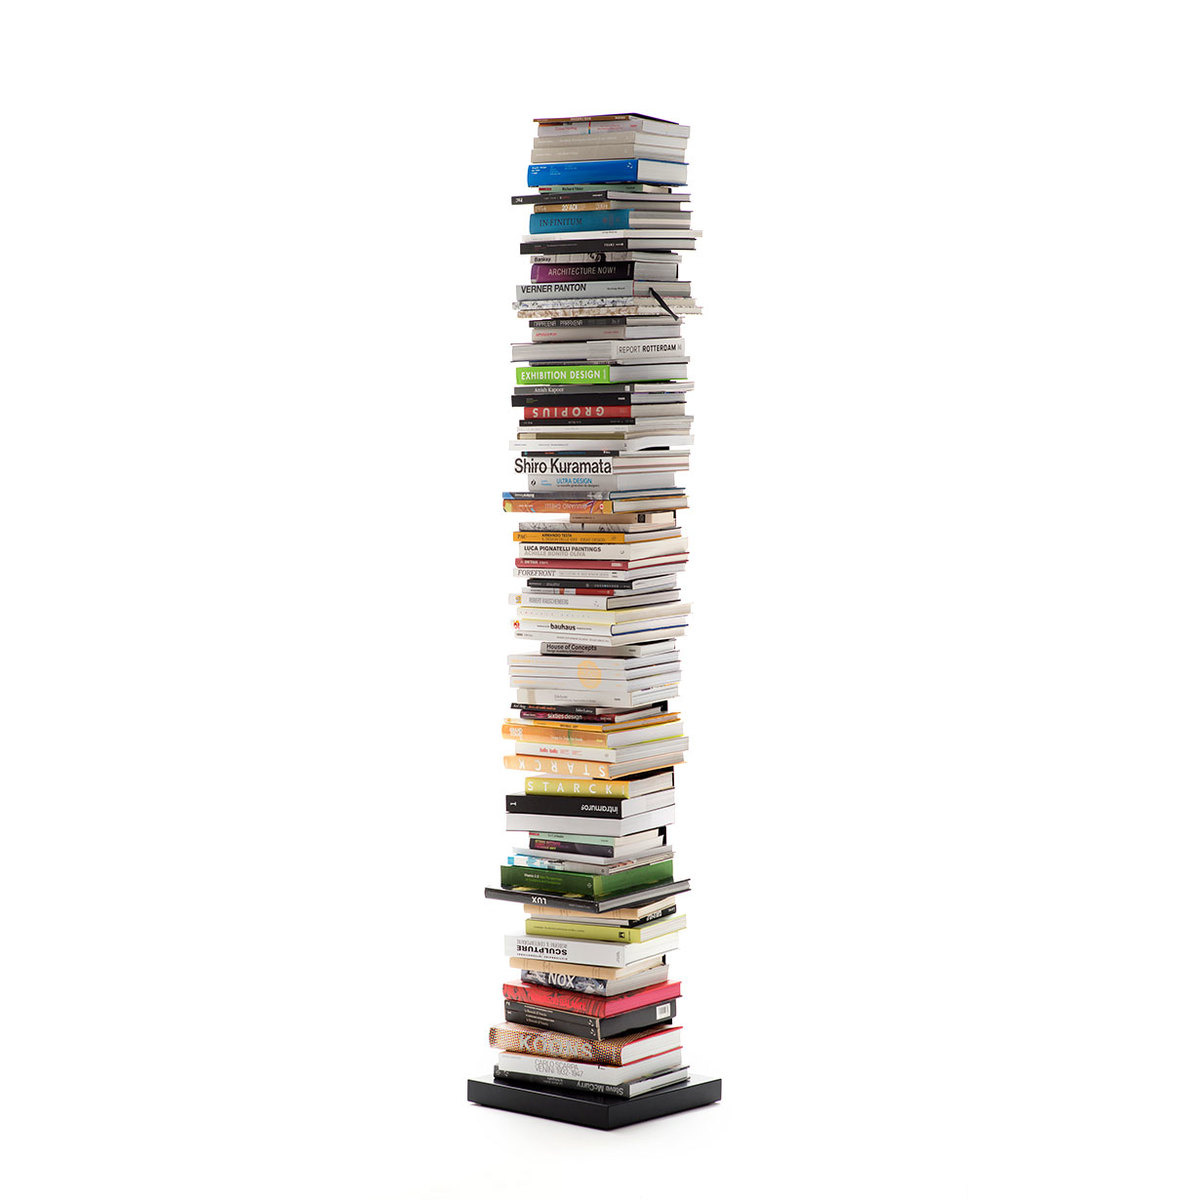 Libreria ptolomeo art h 215 cm nera by opinion ciatti for Libreria ptolomeo